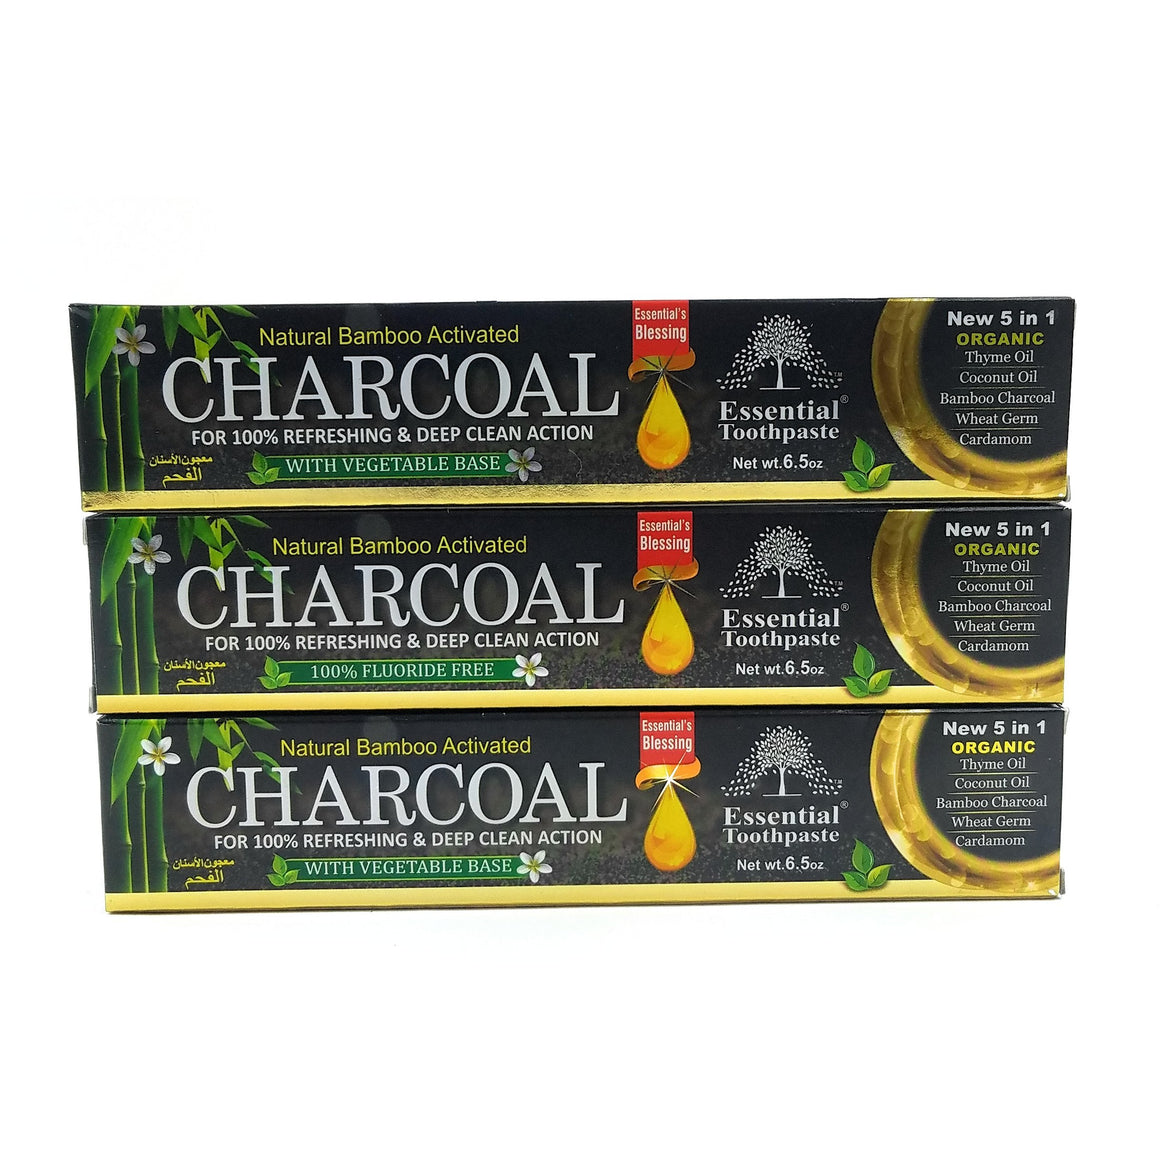 Natural Bamboo Activated Charcoal Toothpaste